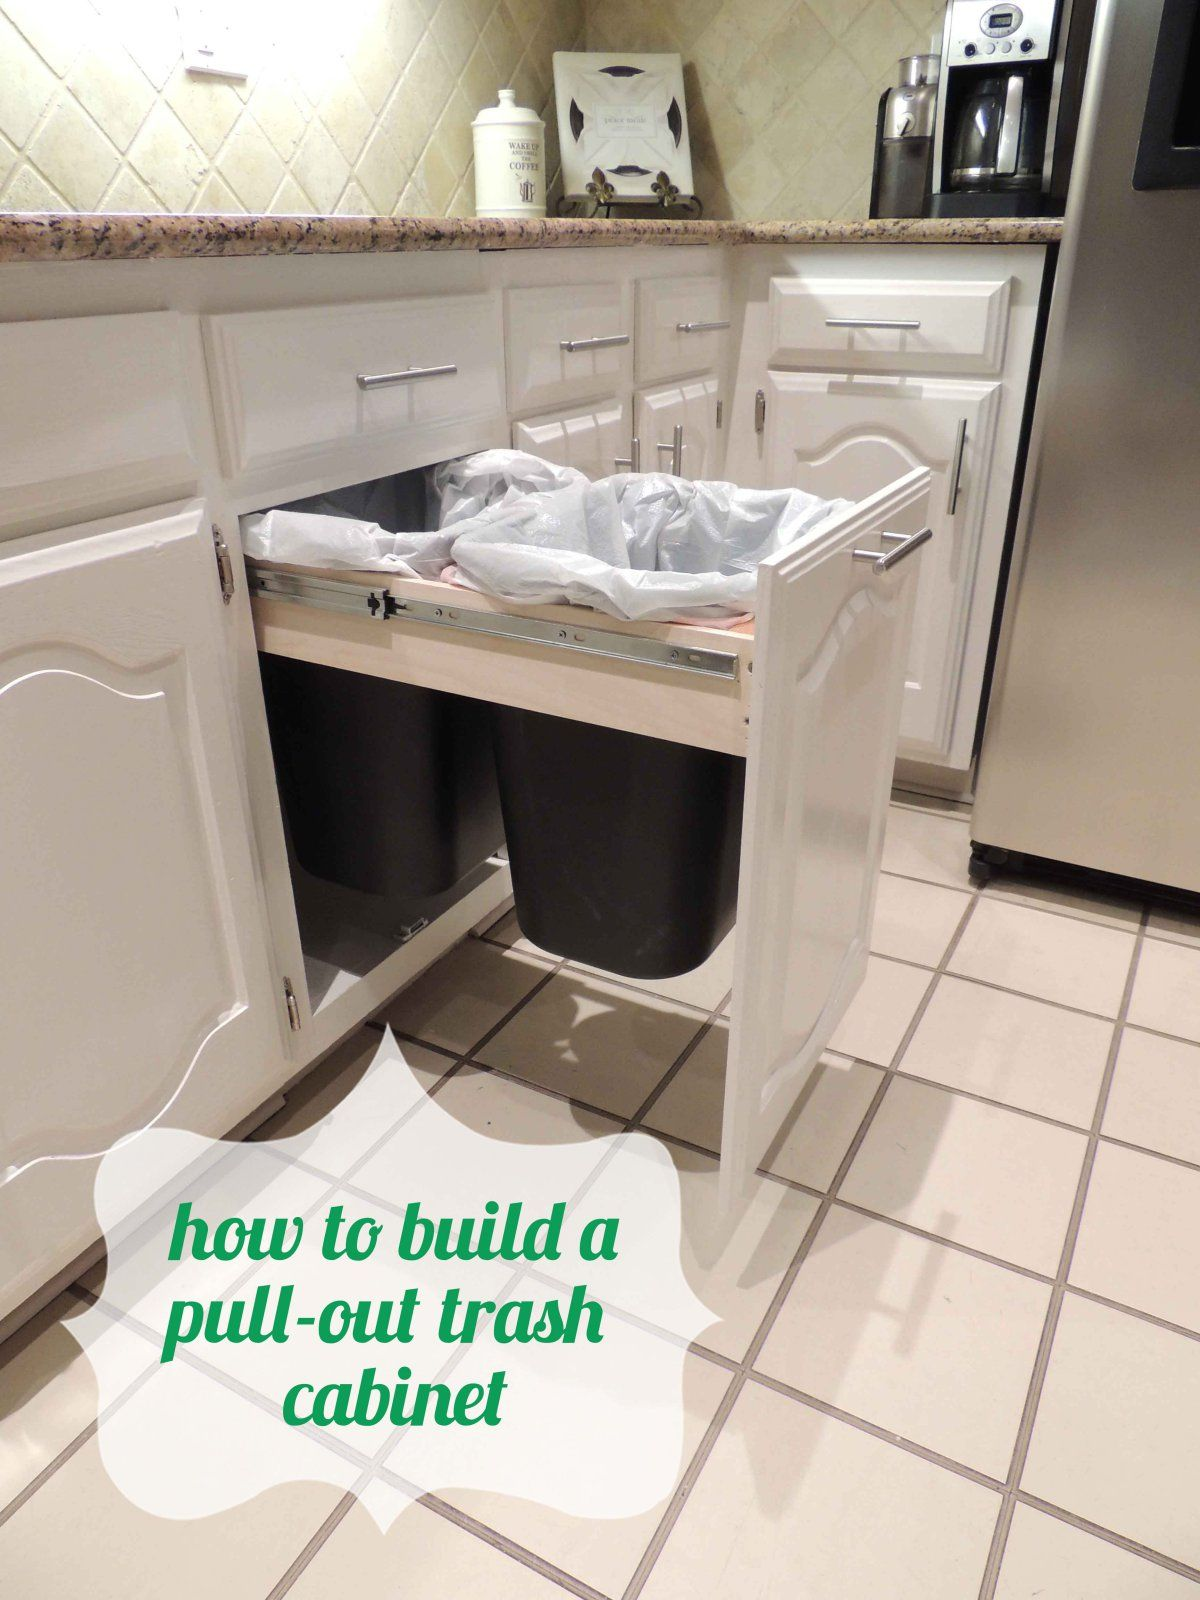 Trash talk kitchens remodeled kitchens and kitchen things